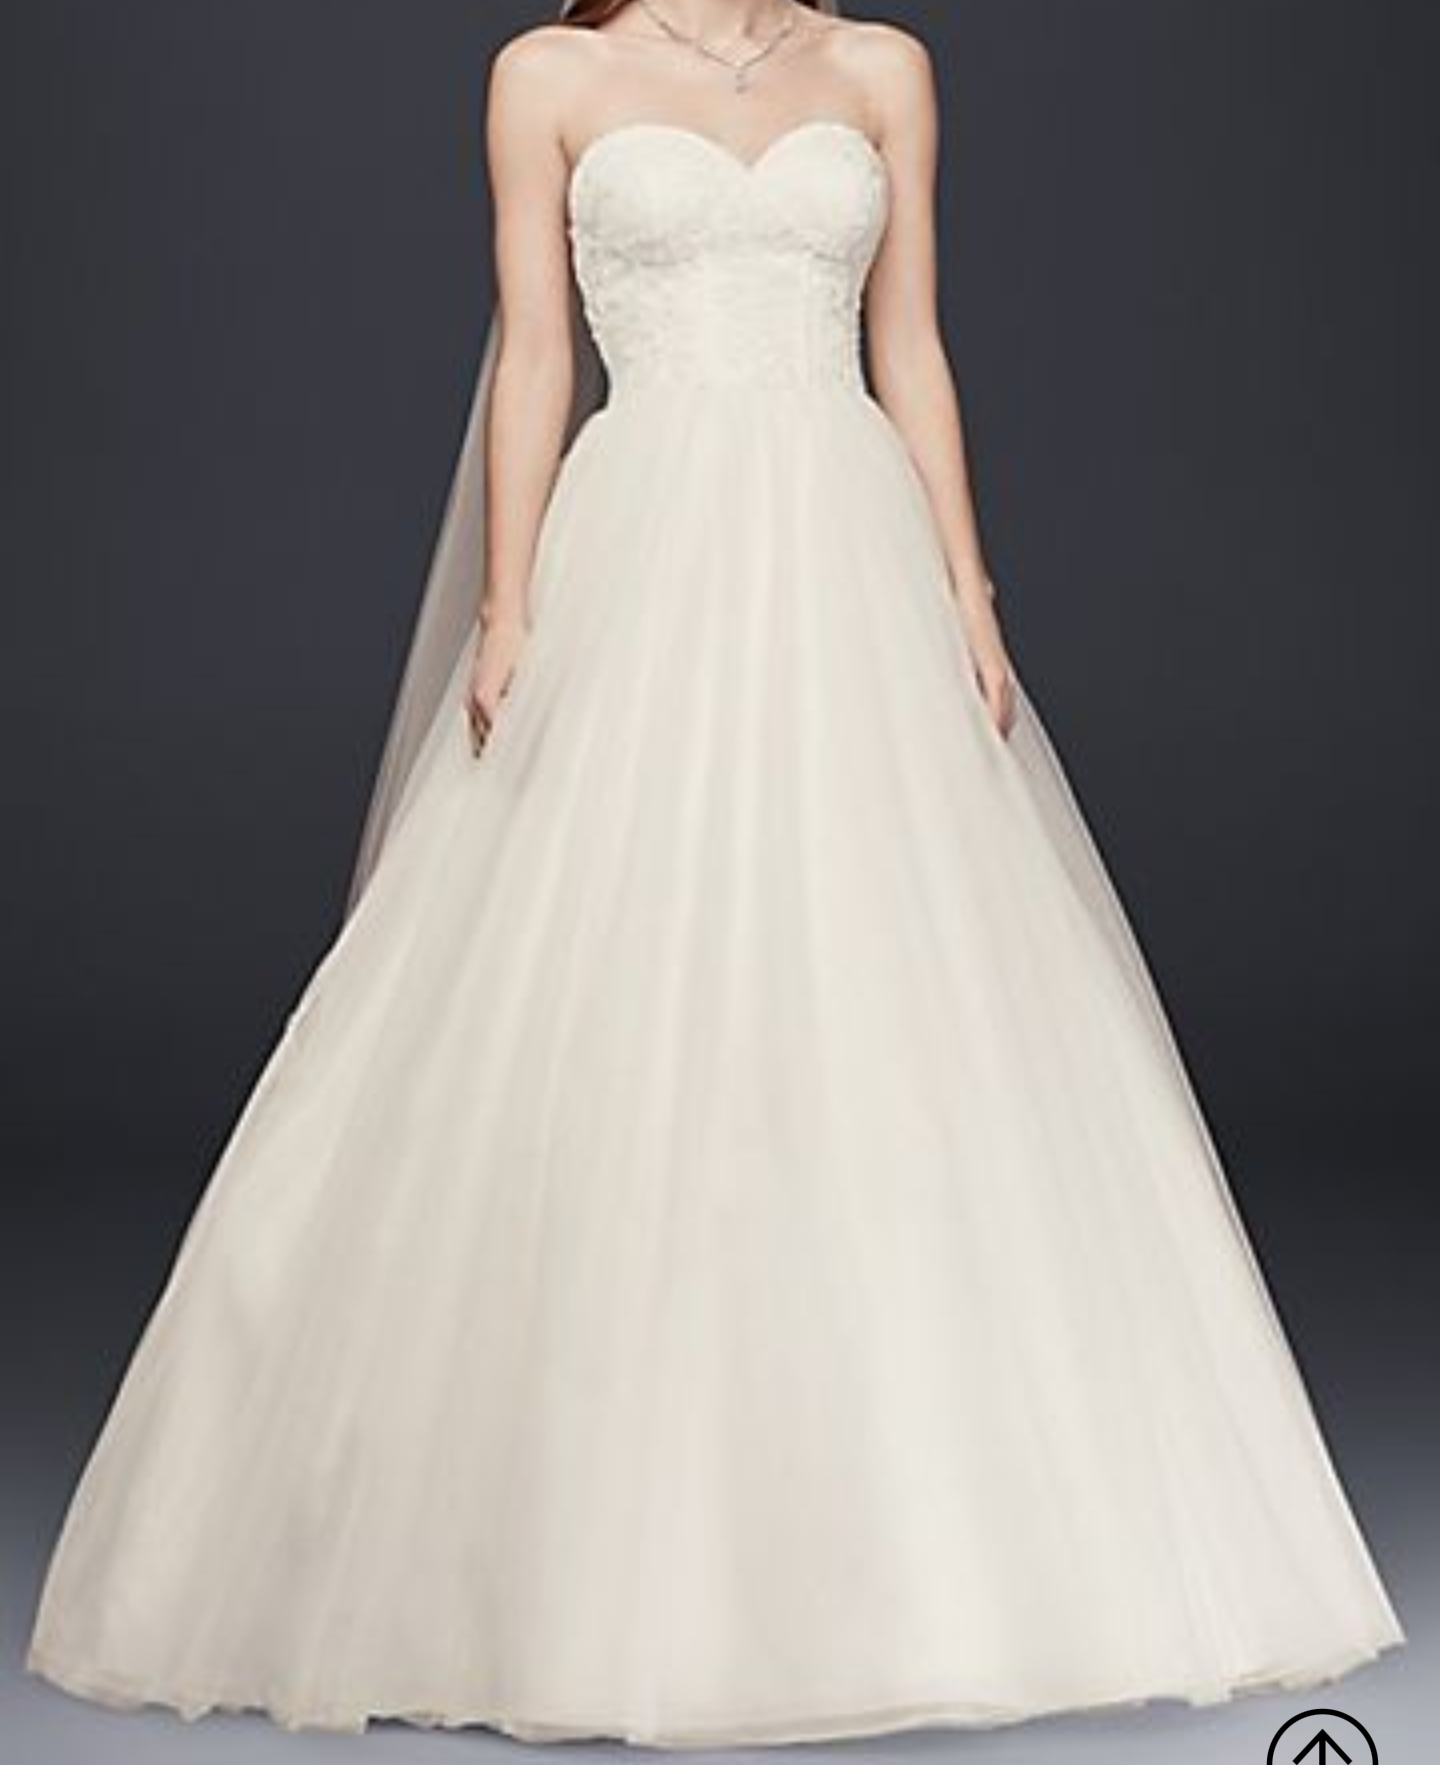 David's Bridal - Sweetheart Wedding Gown